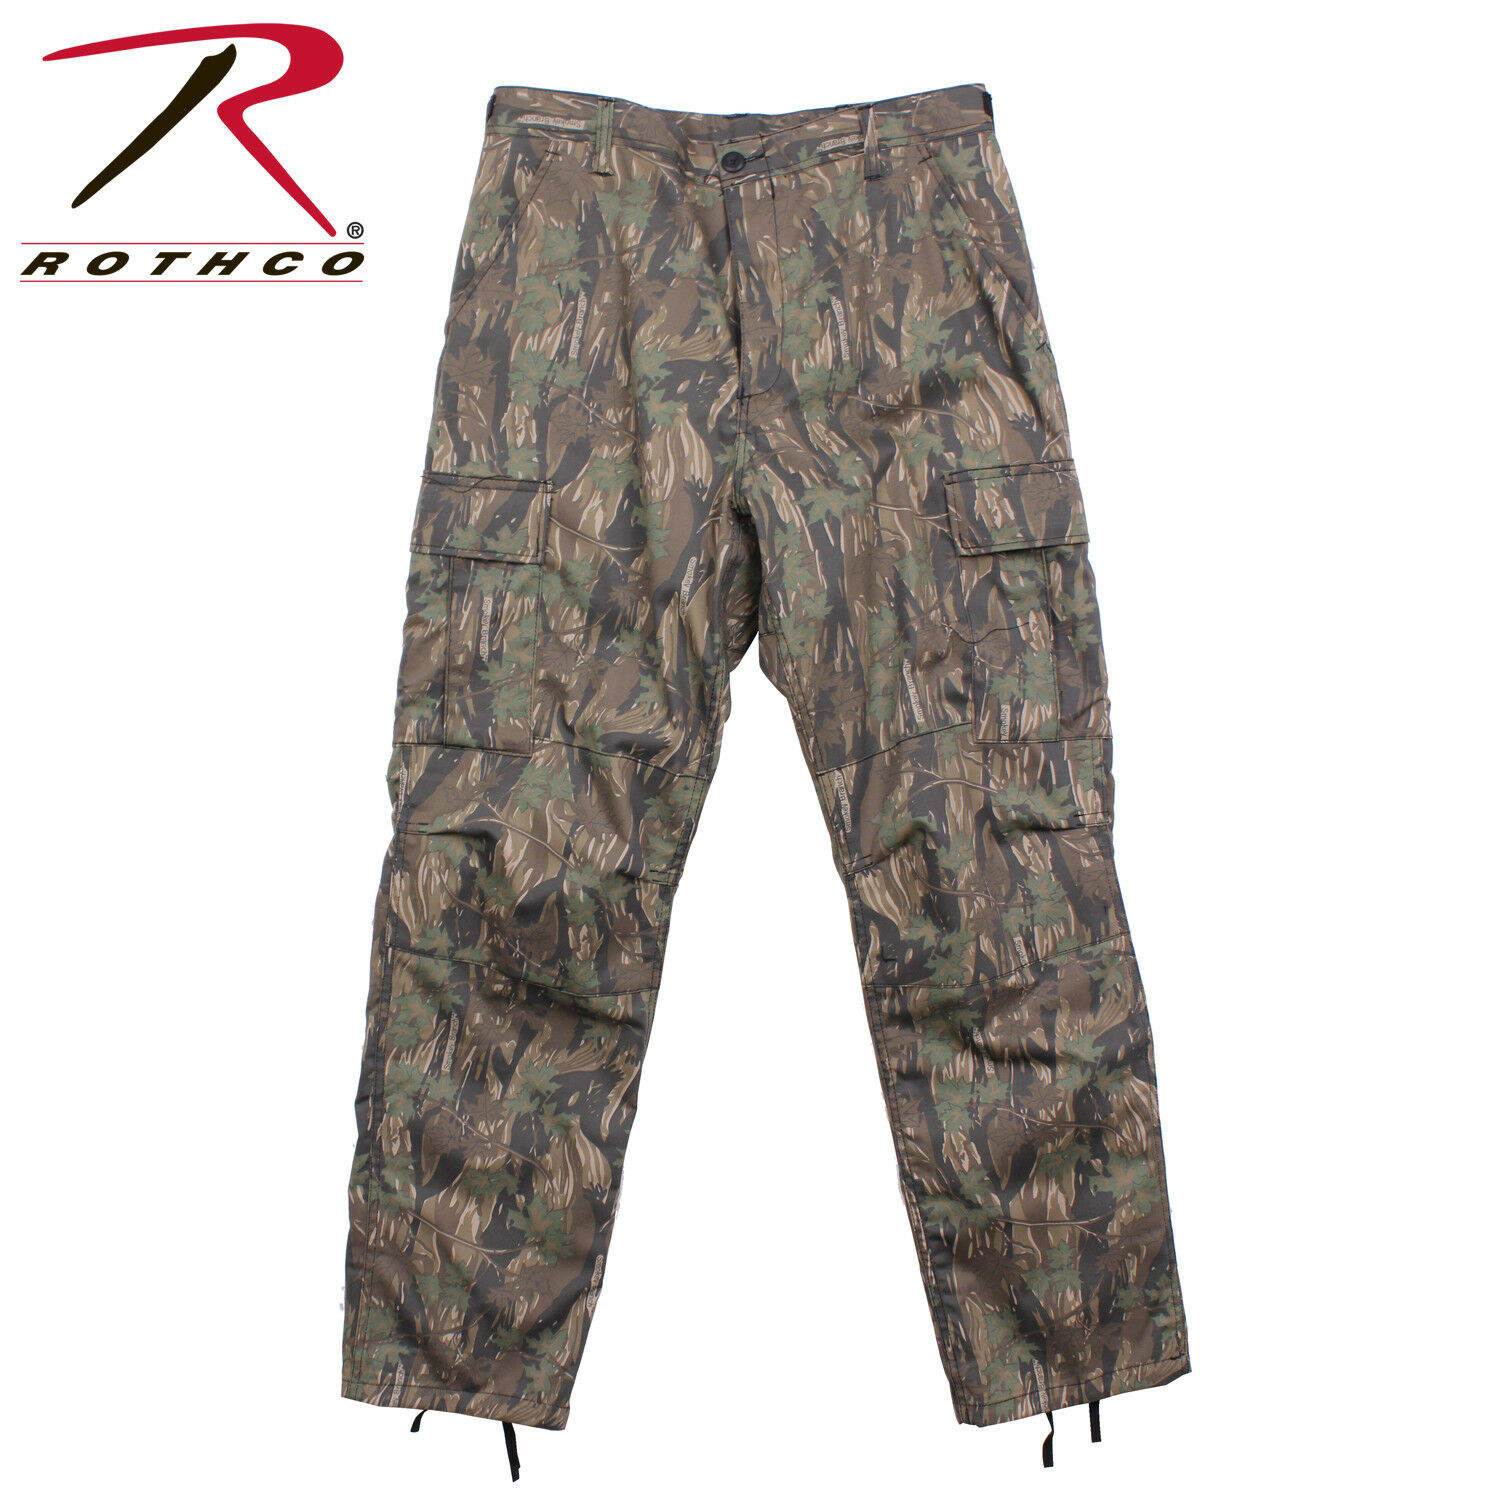 Smokey Branch Camouflage Military BDU Cargo Polyester Cotton Fatigue Pants 8855